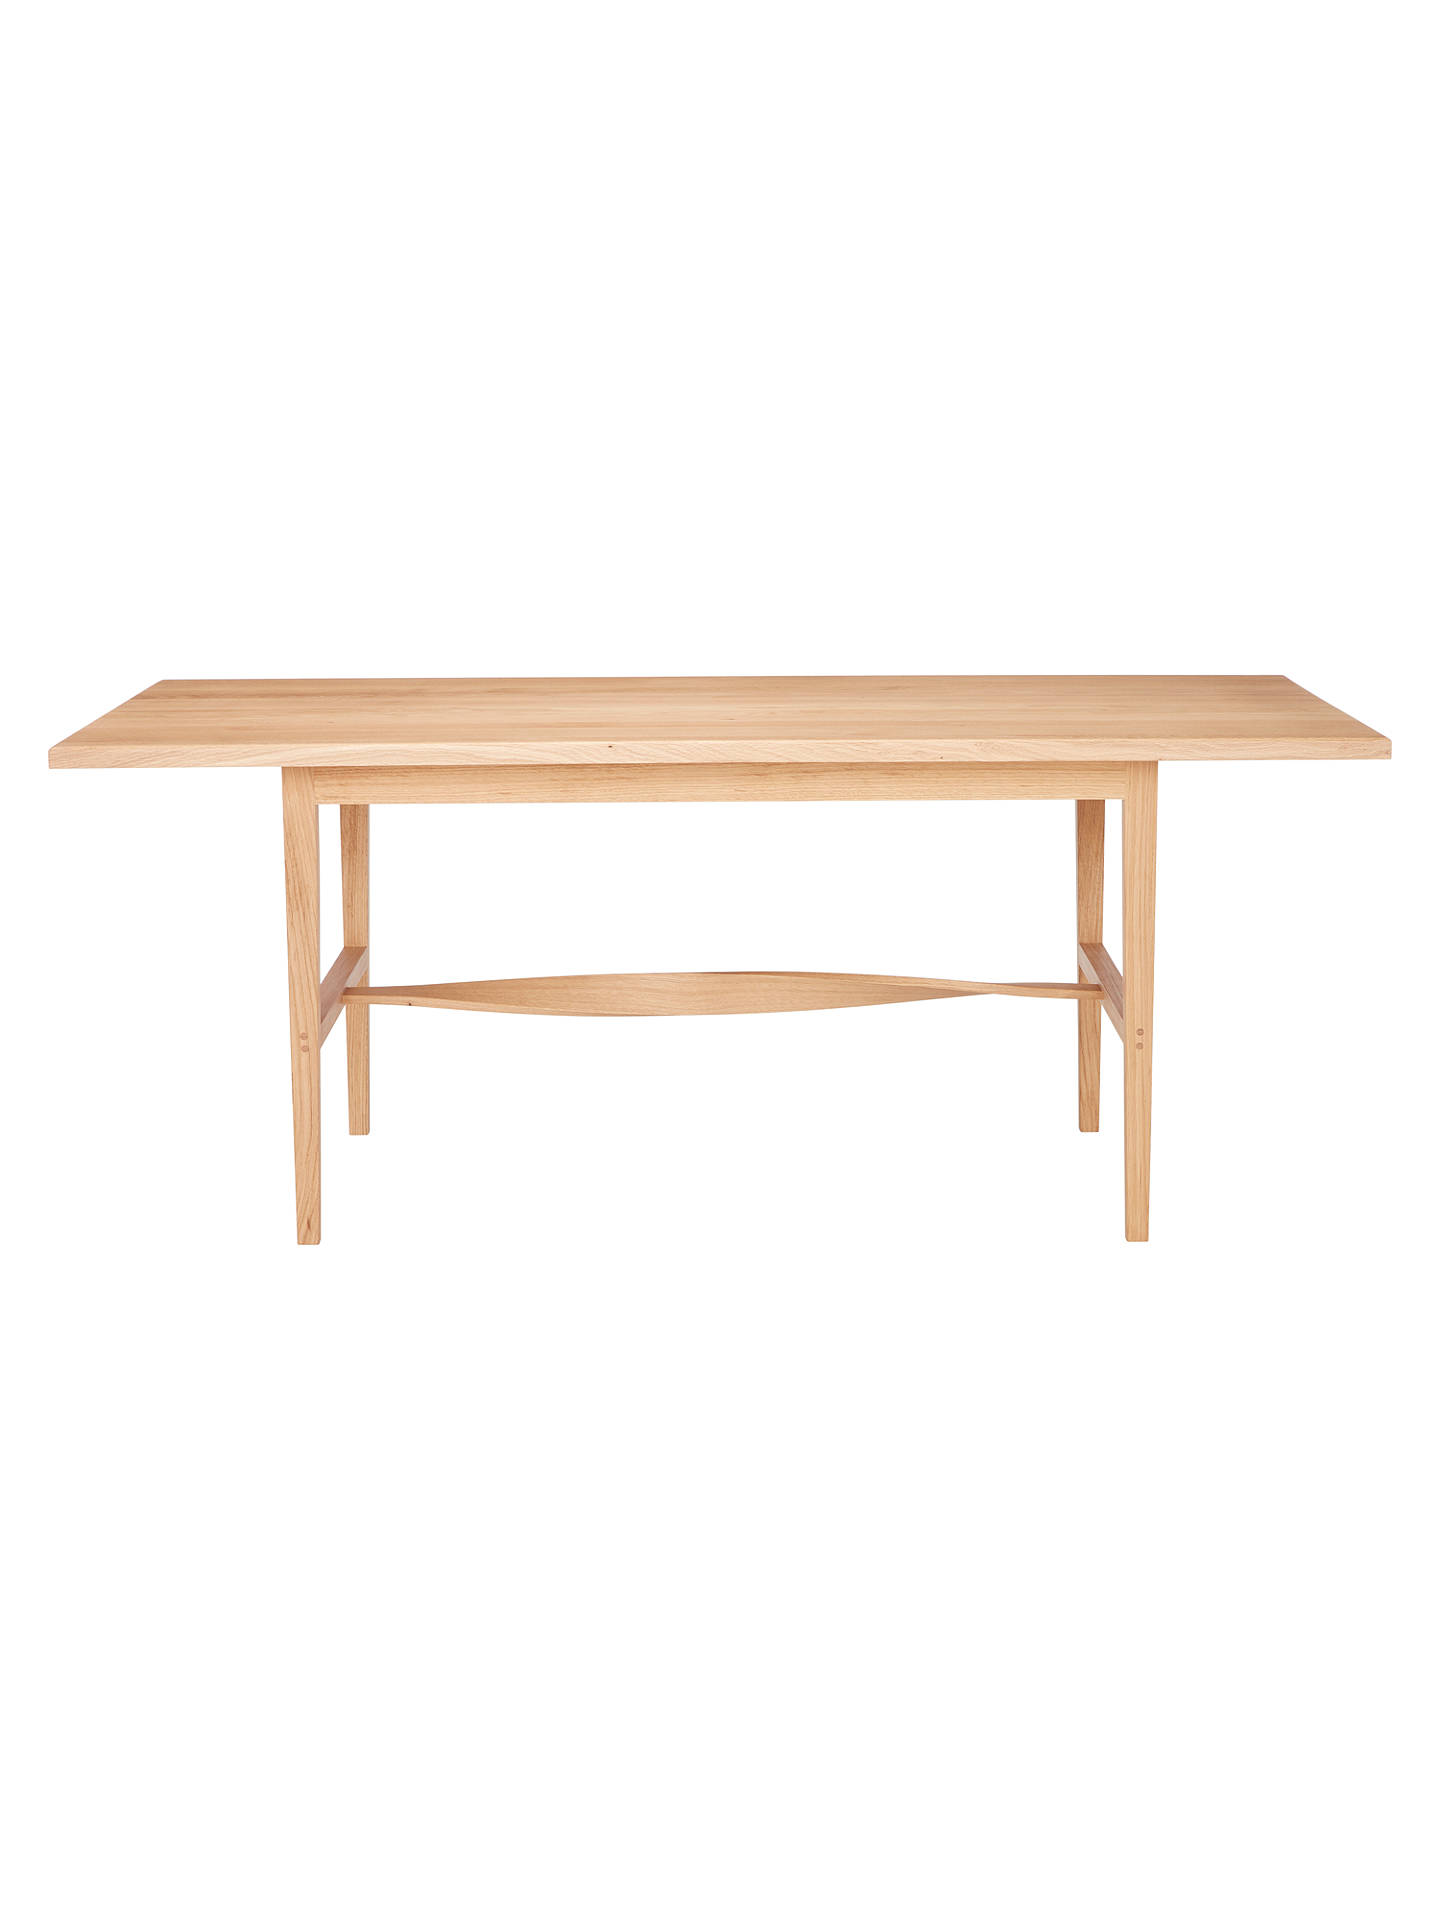 Buy Tom Raffield Treave Dining Table Online at johnlewis.com